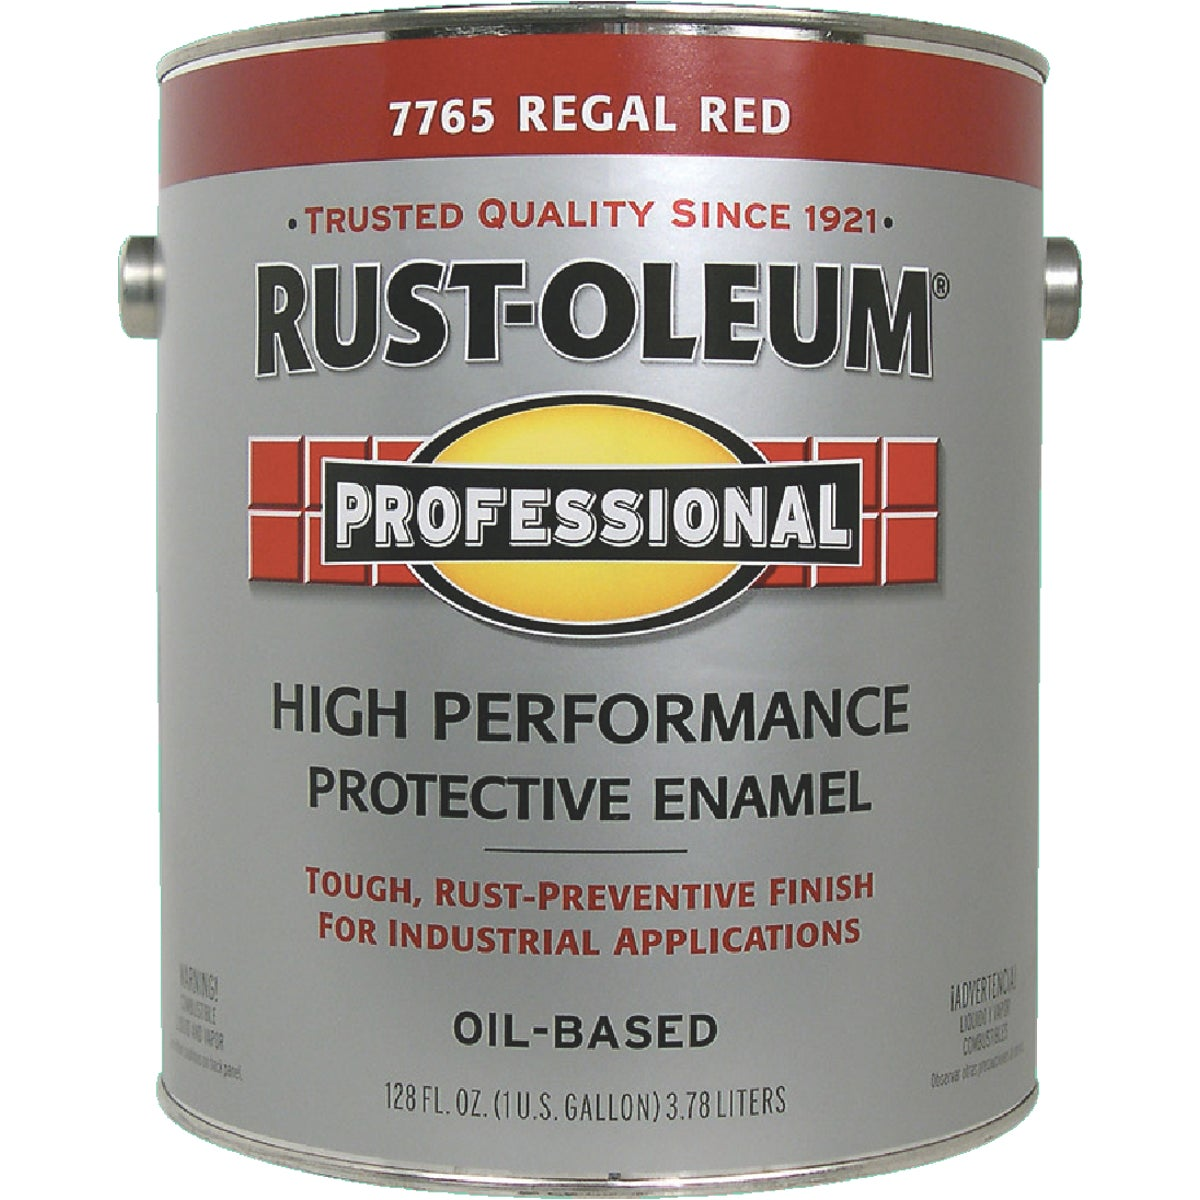 VOC REGAL RED PRO ENAMEL - 215965 by Rustoleum